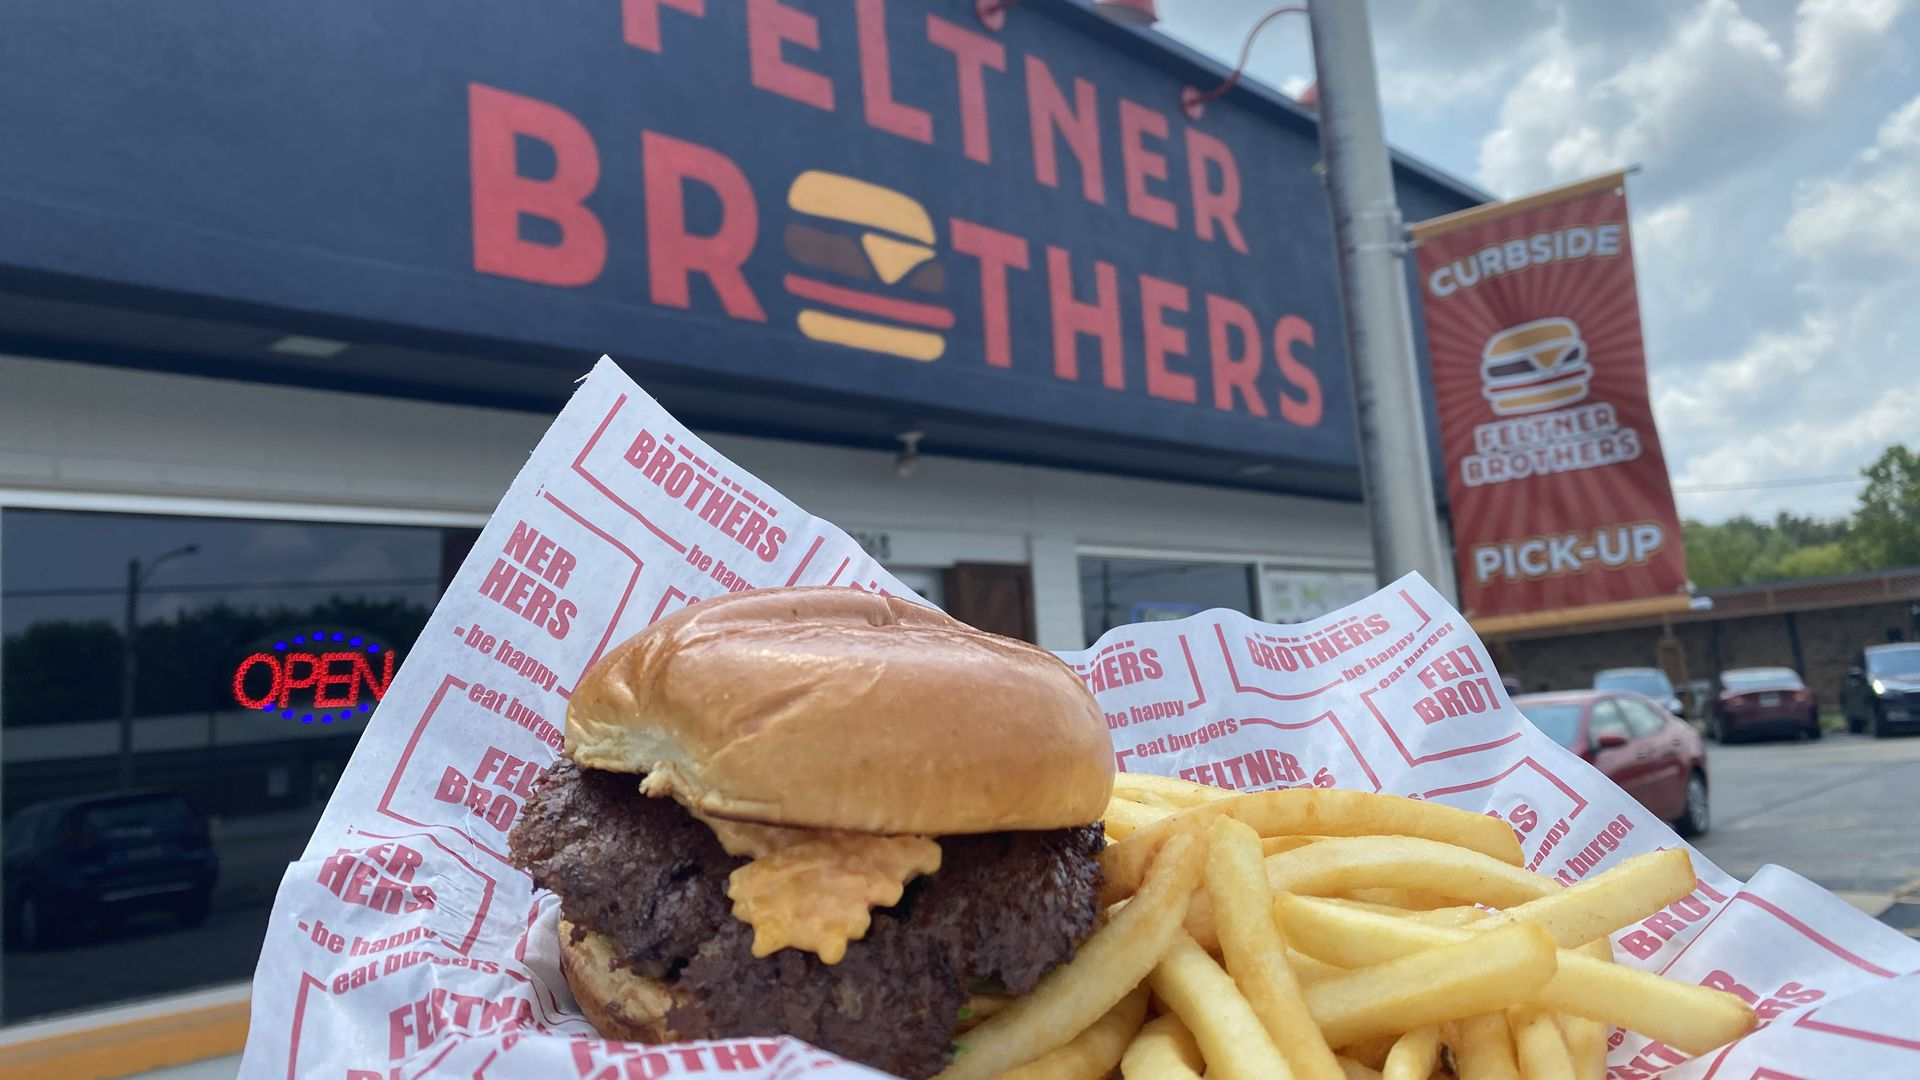 A photo of burger and fries in front of Feltner Brothers in Fayetteville, Ark.